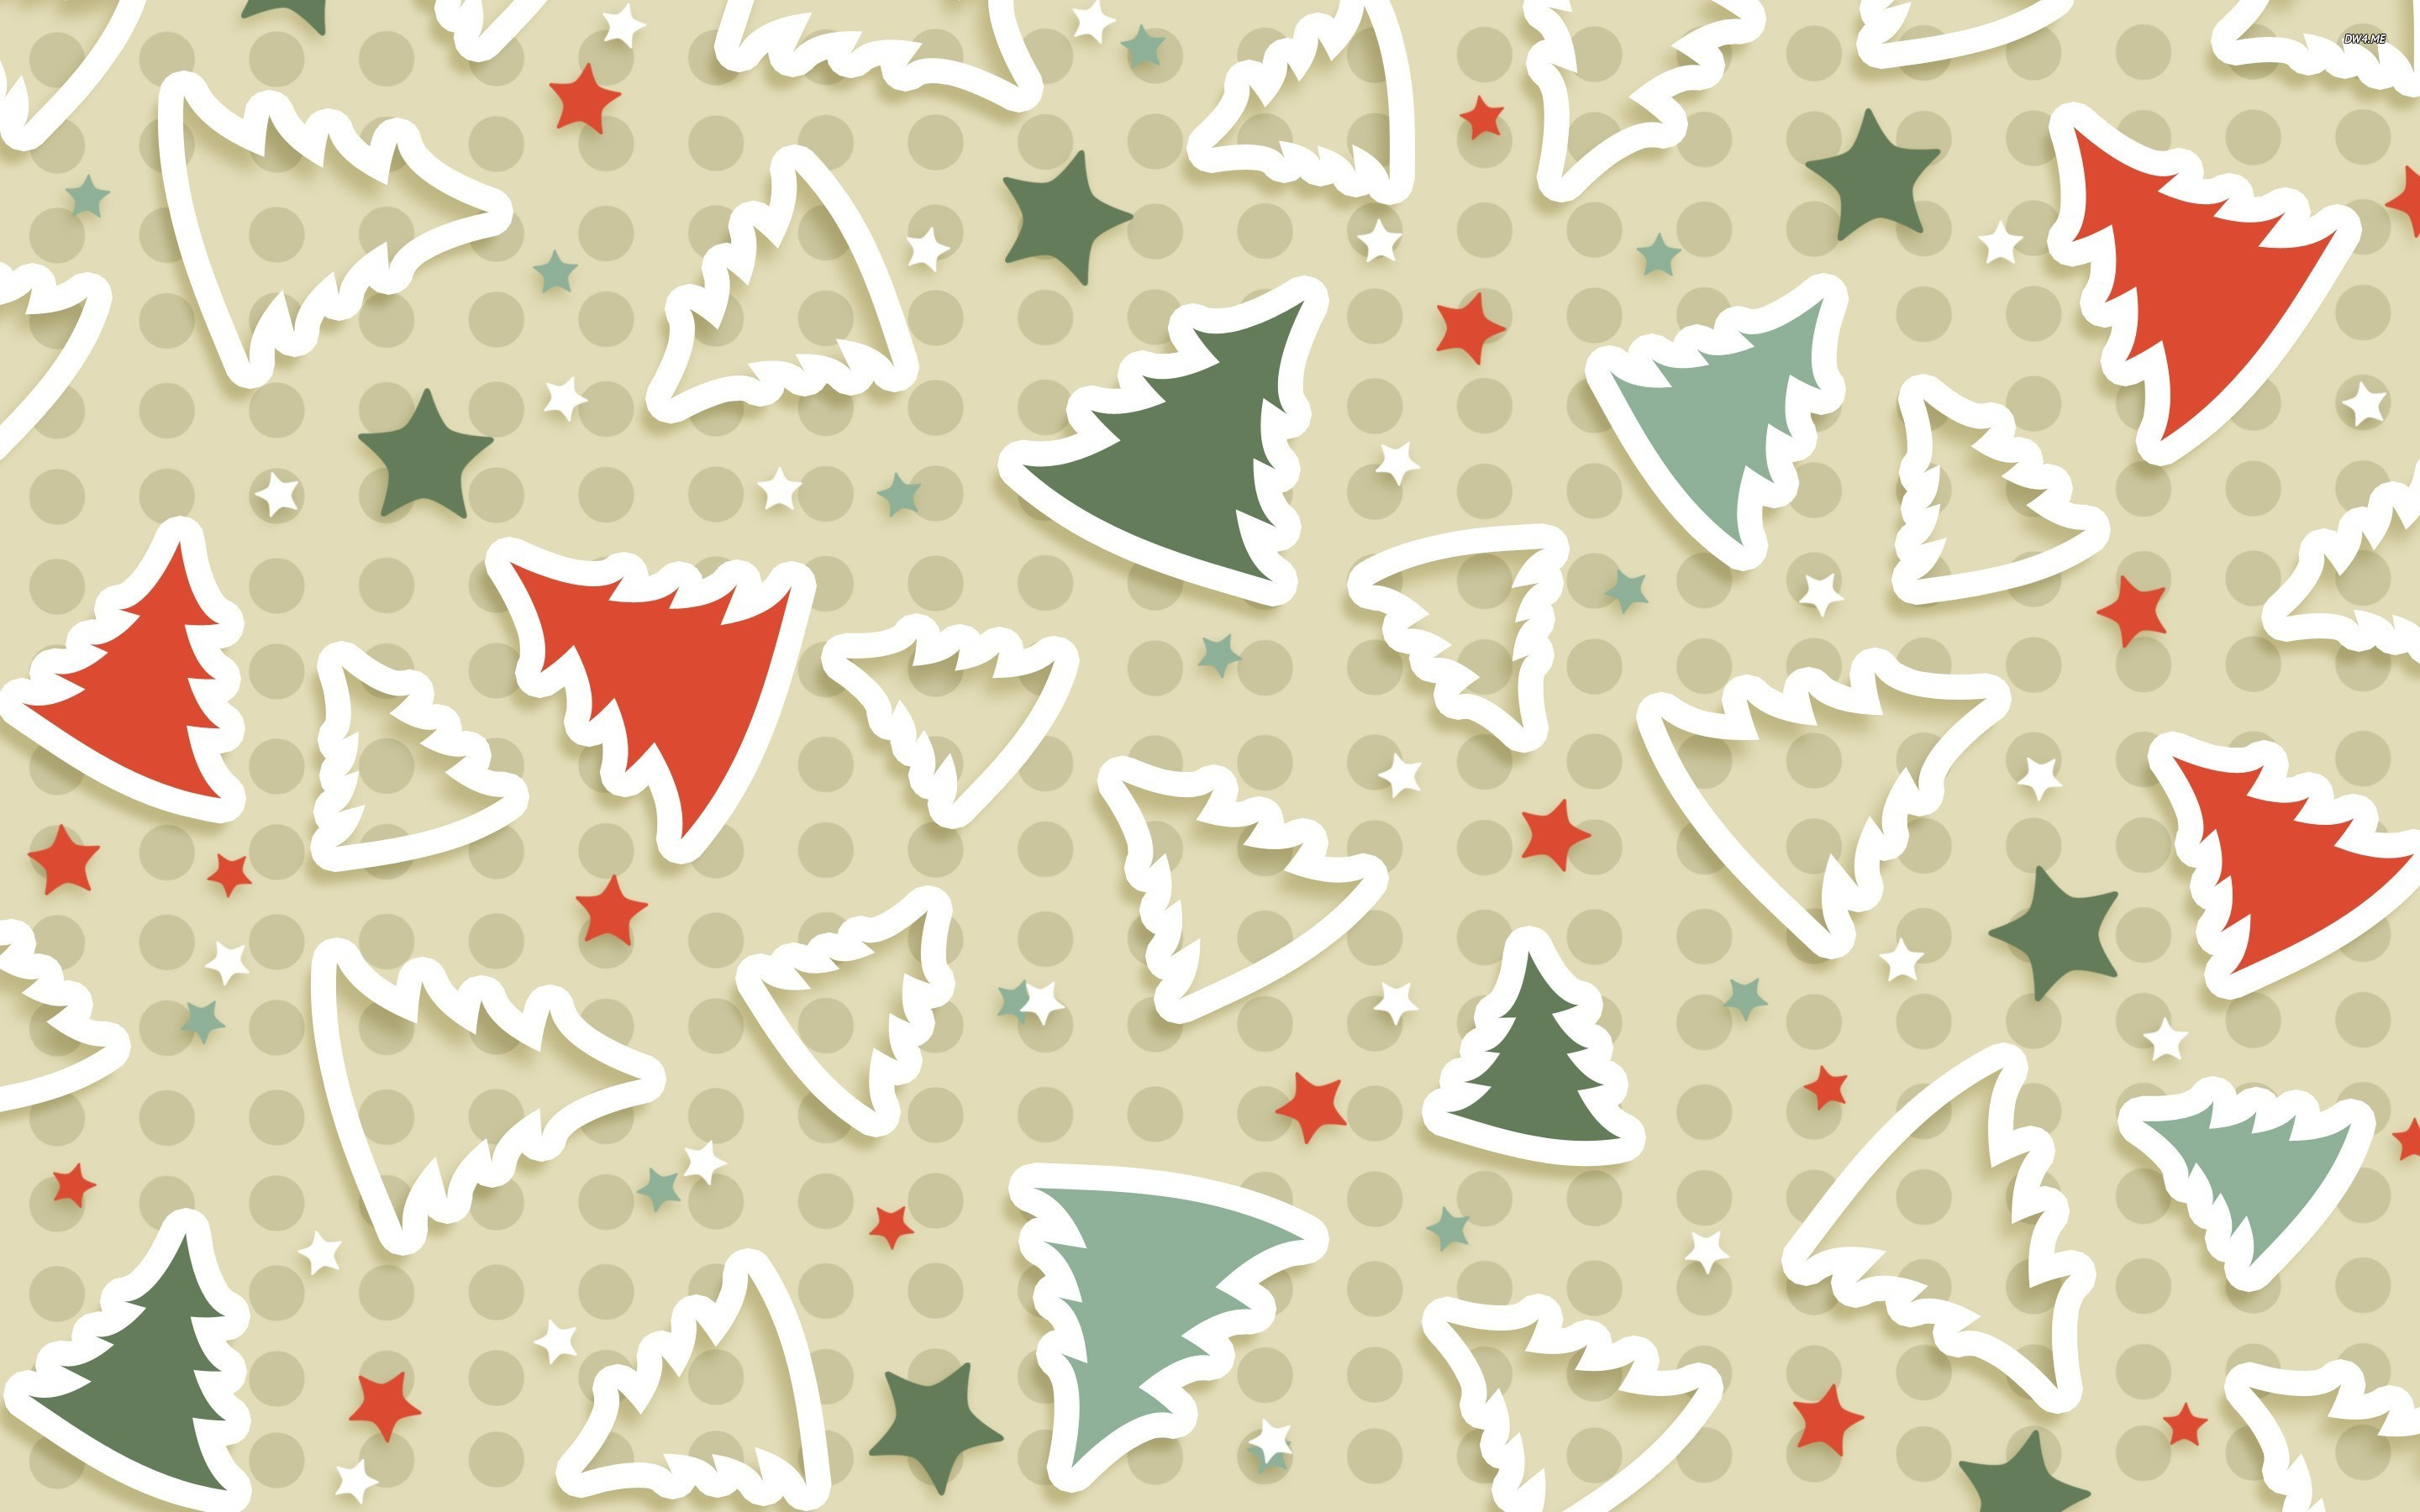 Christmas Tree Pattern Best Of Christmas Tree Pattern Wallpaper Holiday Wallpapers 1998 Of Great 46 Images Christmas Tree Pattern